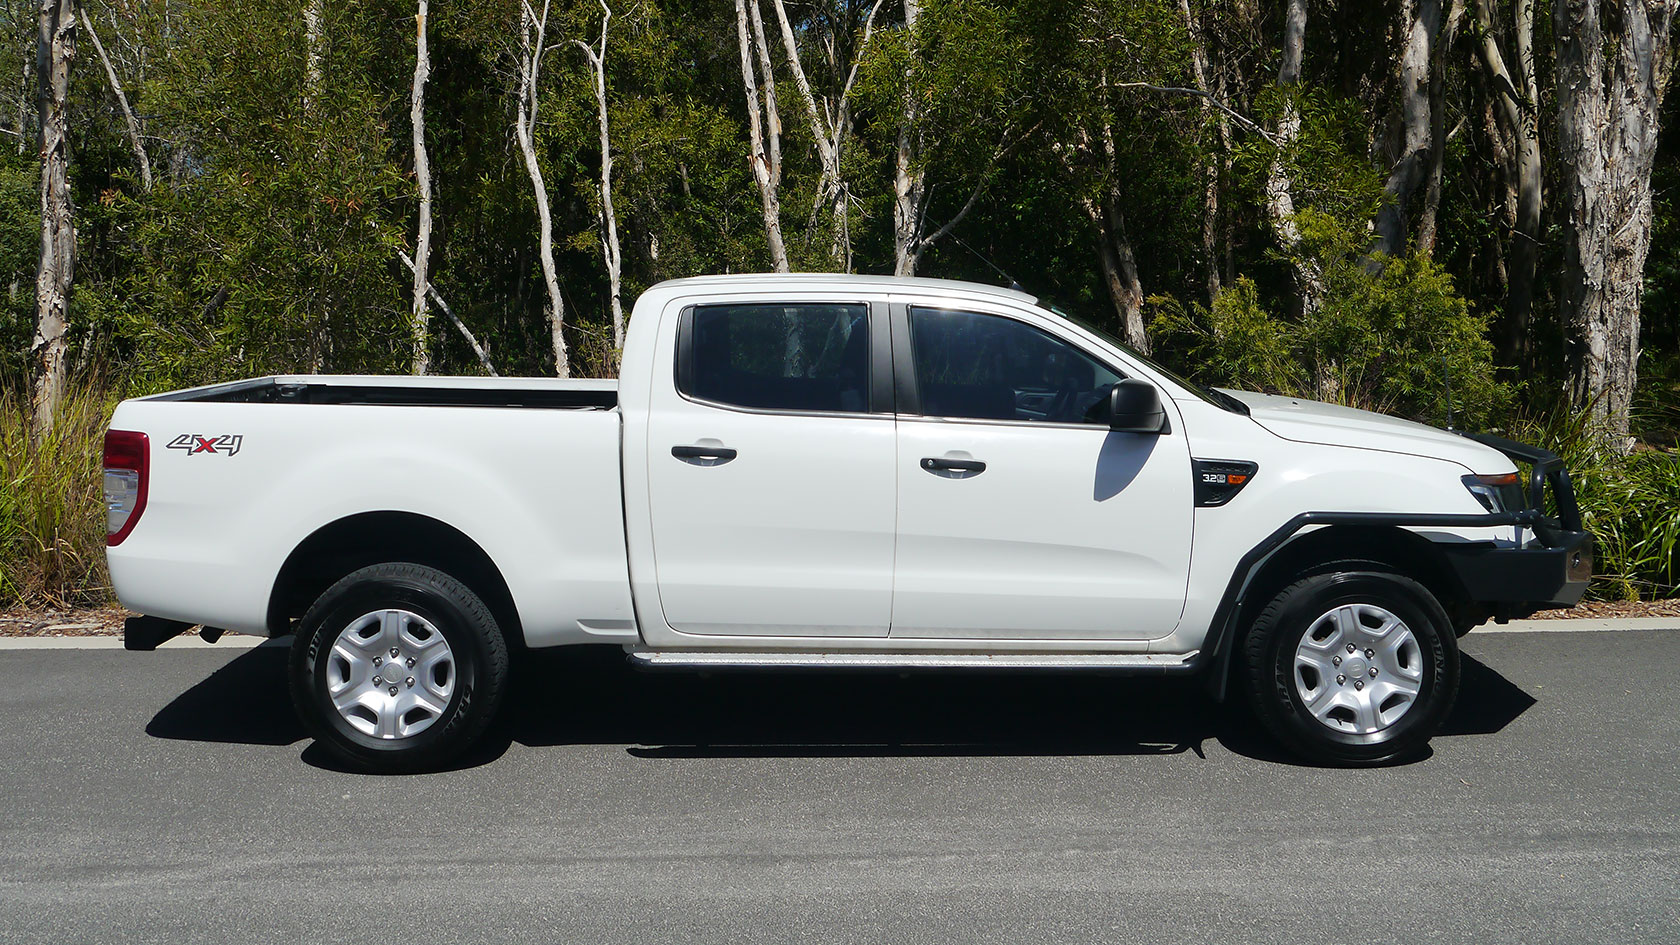 Ford Ranger tray extension